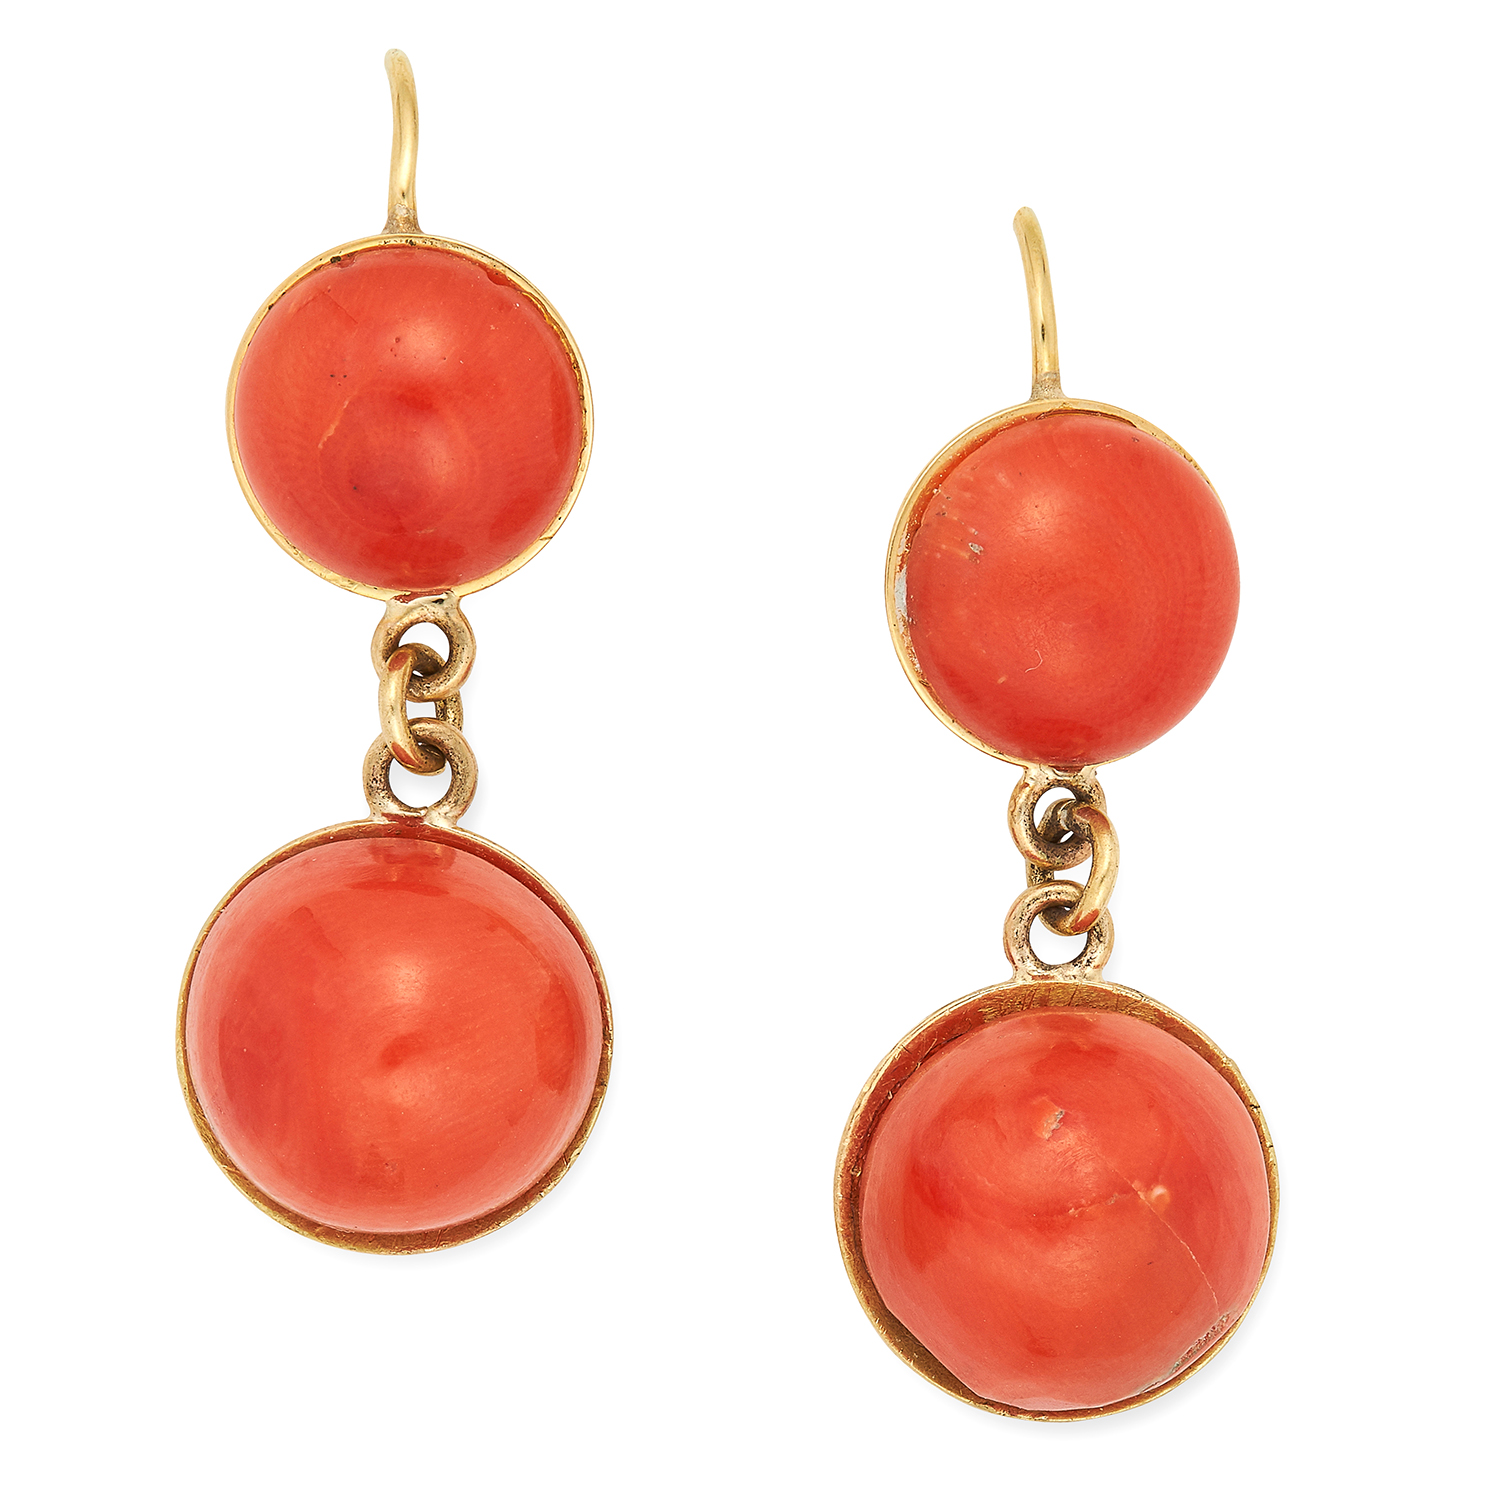 Los 36 - CORAL EARRINGS, set with cabochon coral, 3.3cm, 7.9g.